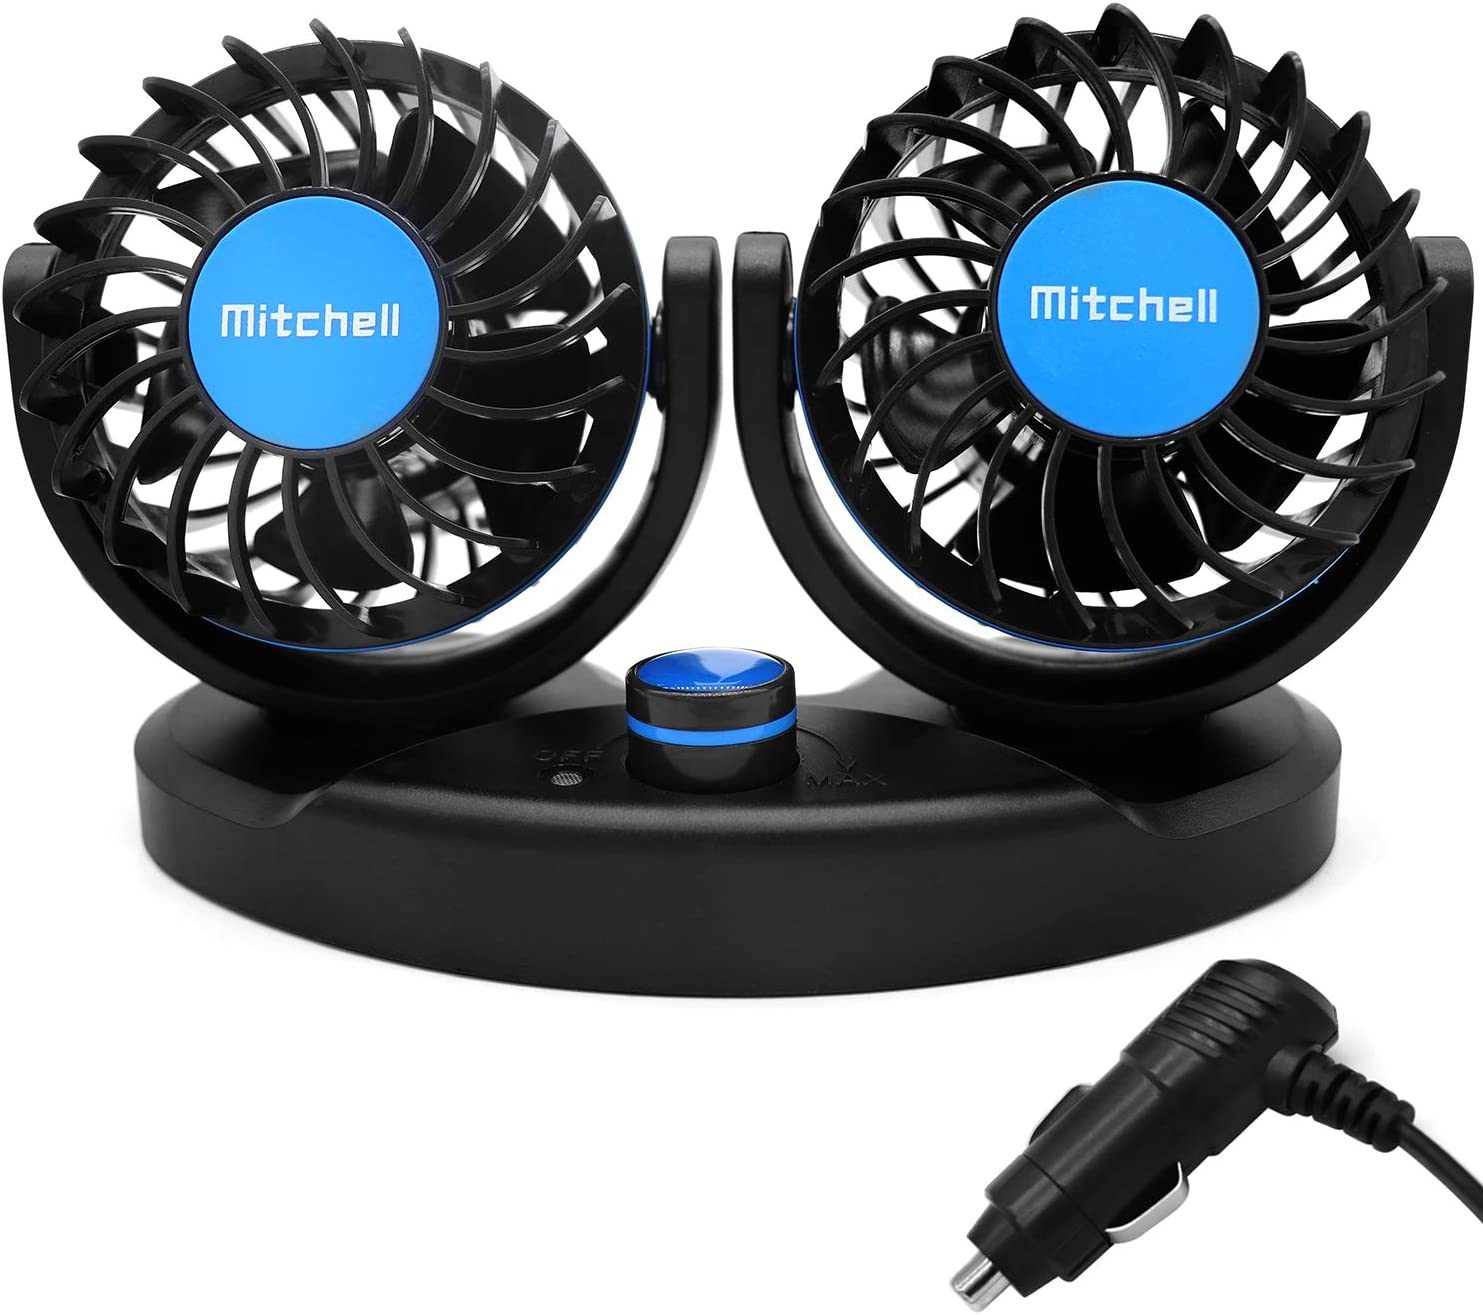 QIFUN 12V Car Fan, Electric Car Cooling Fan with 360° Rotatable Stepless Speed Dual Head Fan with Cigarette Lighter Plug for Vehicles, SUV, RV, Boat